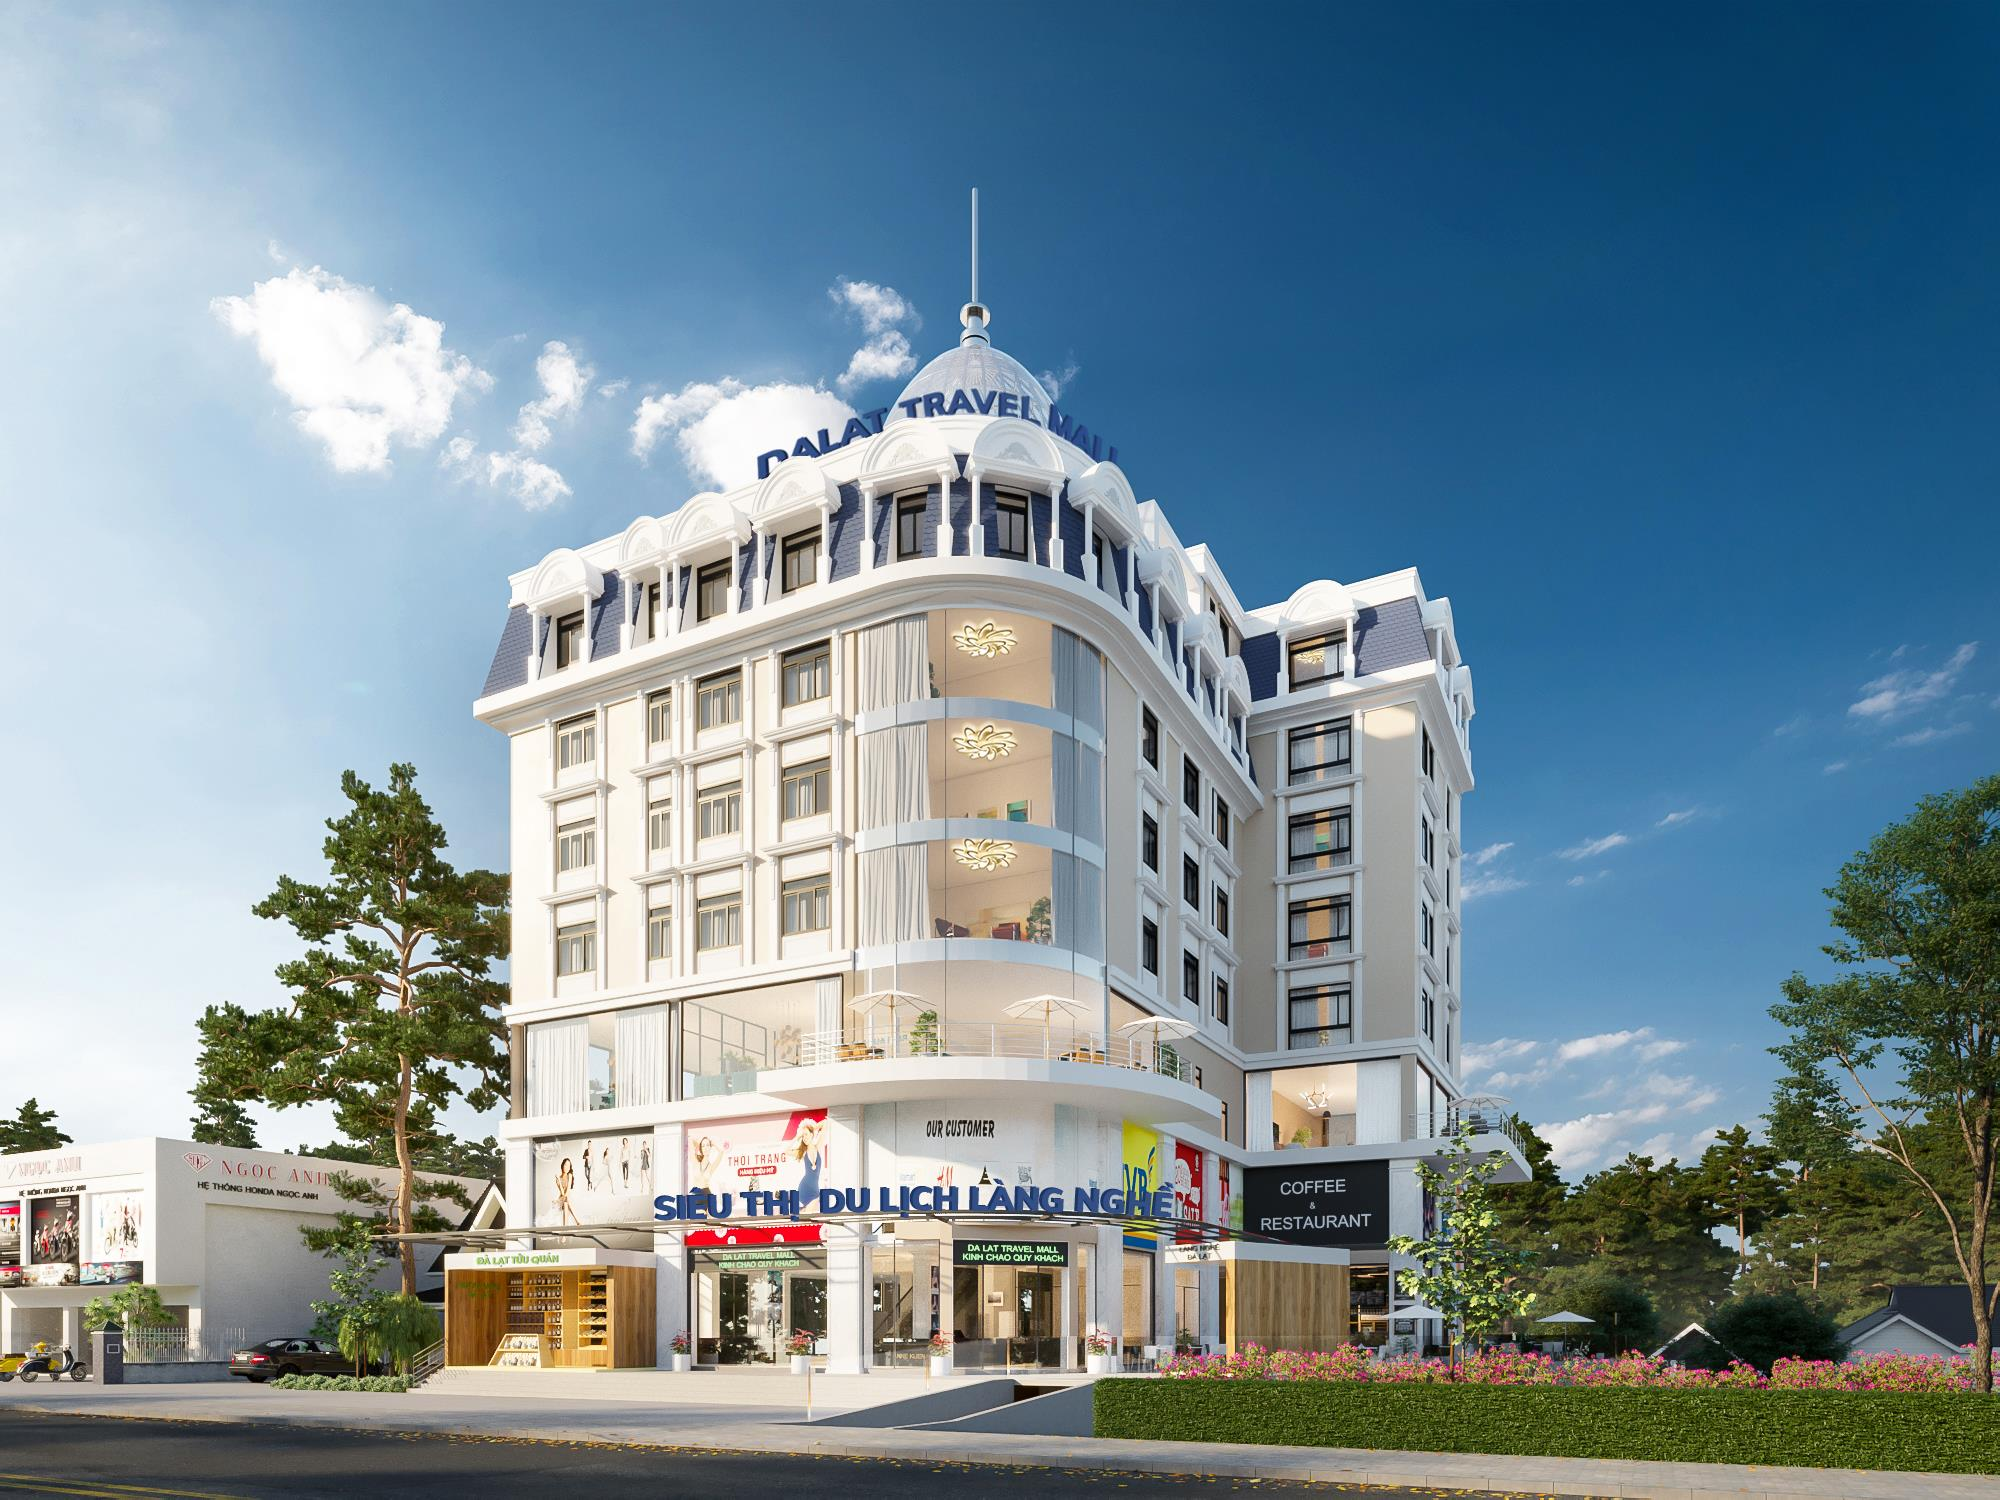 Dự án Dalat Travel Mall